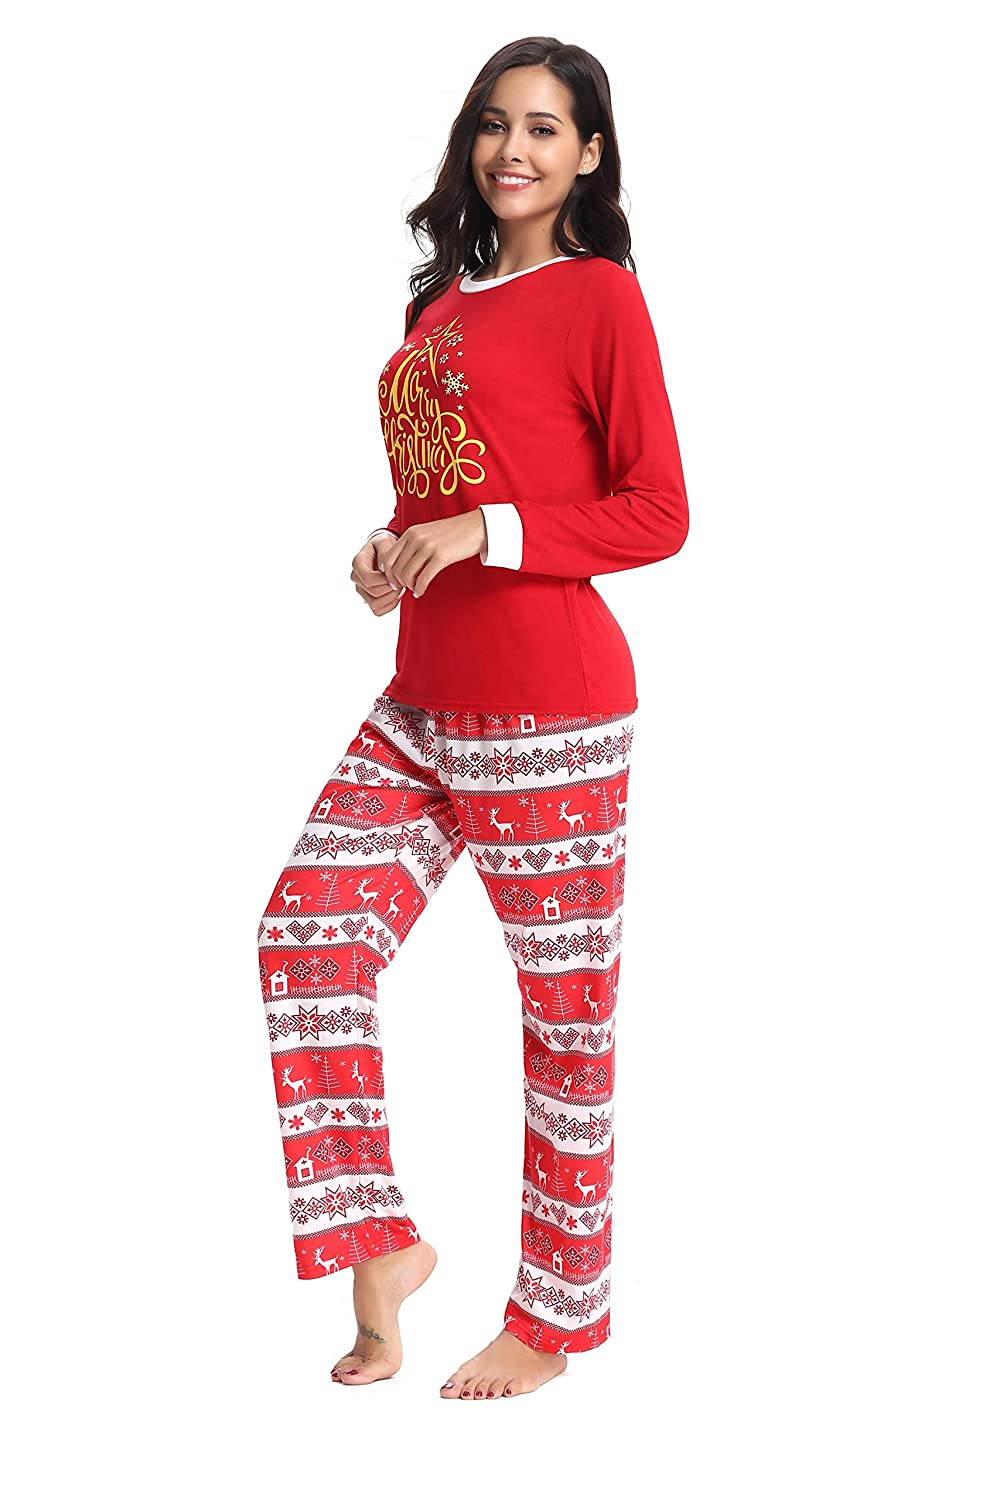 AMONIDA 2018 Christmas Pajama Set for Women Cotton Sleepwear Long Sleeve Pj  Set at Amazon Women s Clothing store  0a11381fd